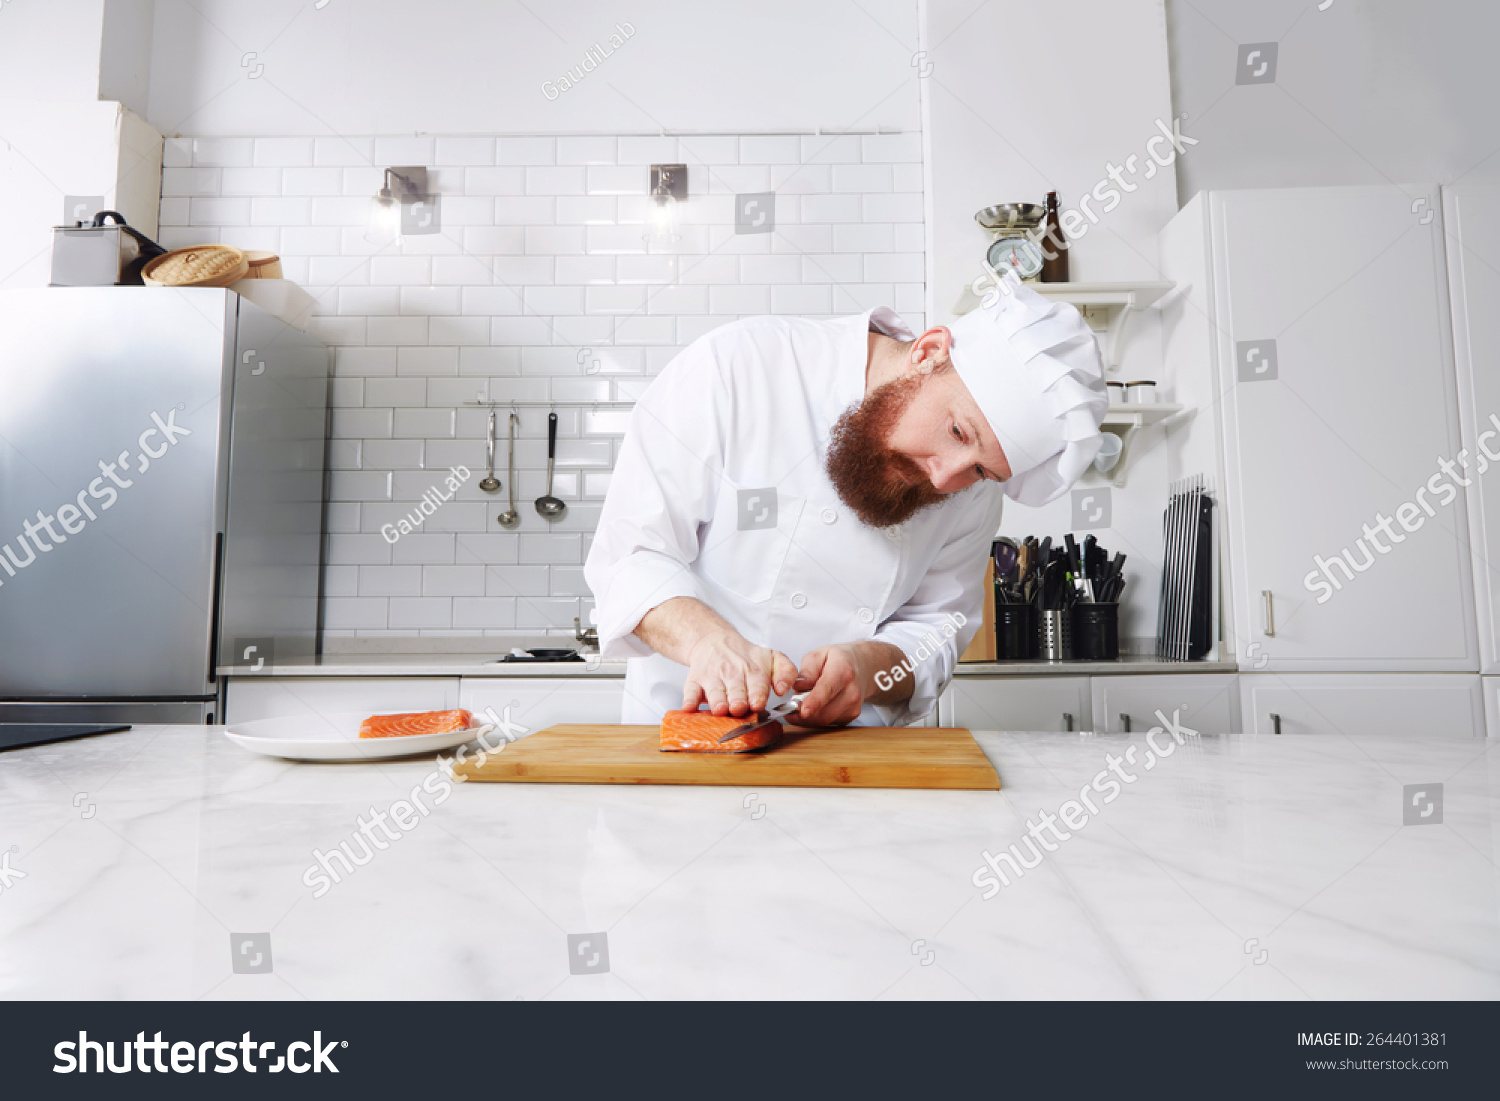 Portrait Of Professional And Experienced Chef Cook In Uniform Diligently Cutting Salmon Fish On